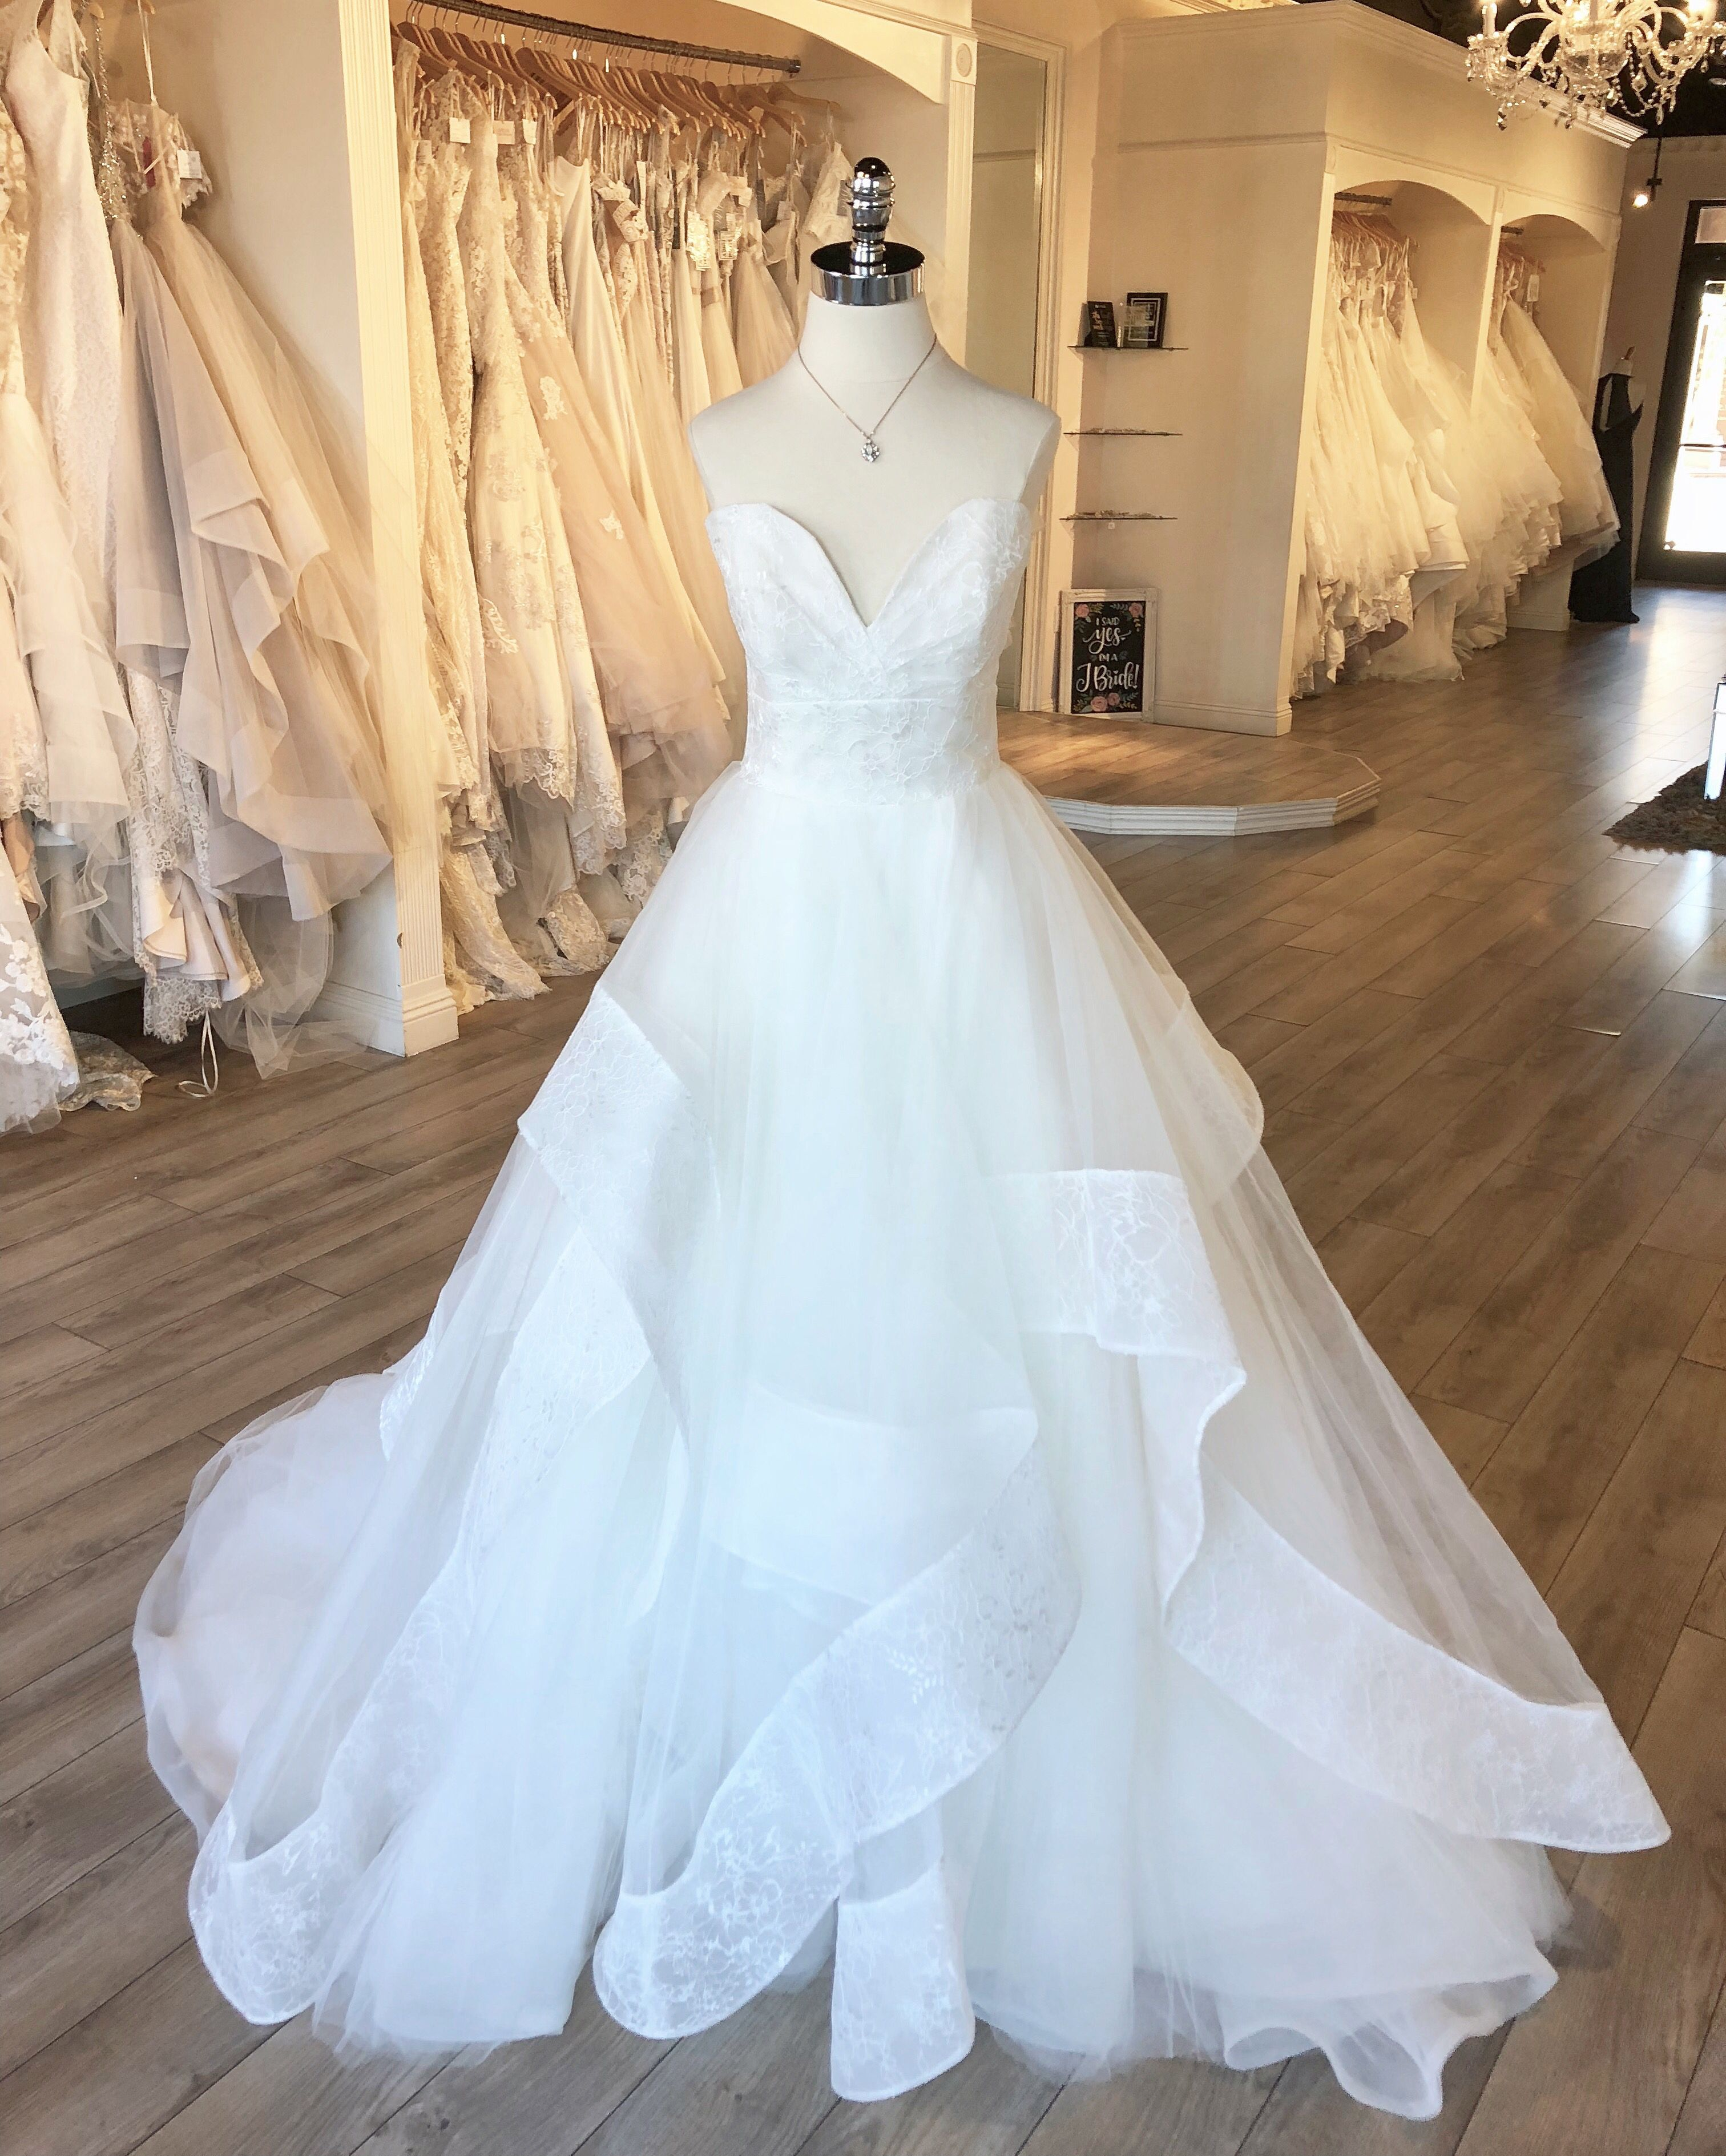 """Fall 2018 Collection Hayley Paige """"Quinn"""" Gown with Sweetheart Lace and  Tulle Layered  Ballgown  WeddingDress  hayleypaige from J Bridal Boutique  in Tucson 6af33b81d6fb"""